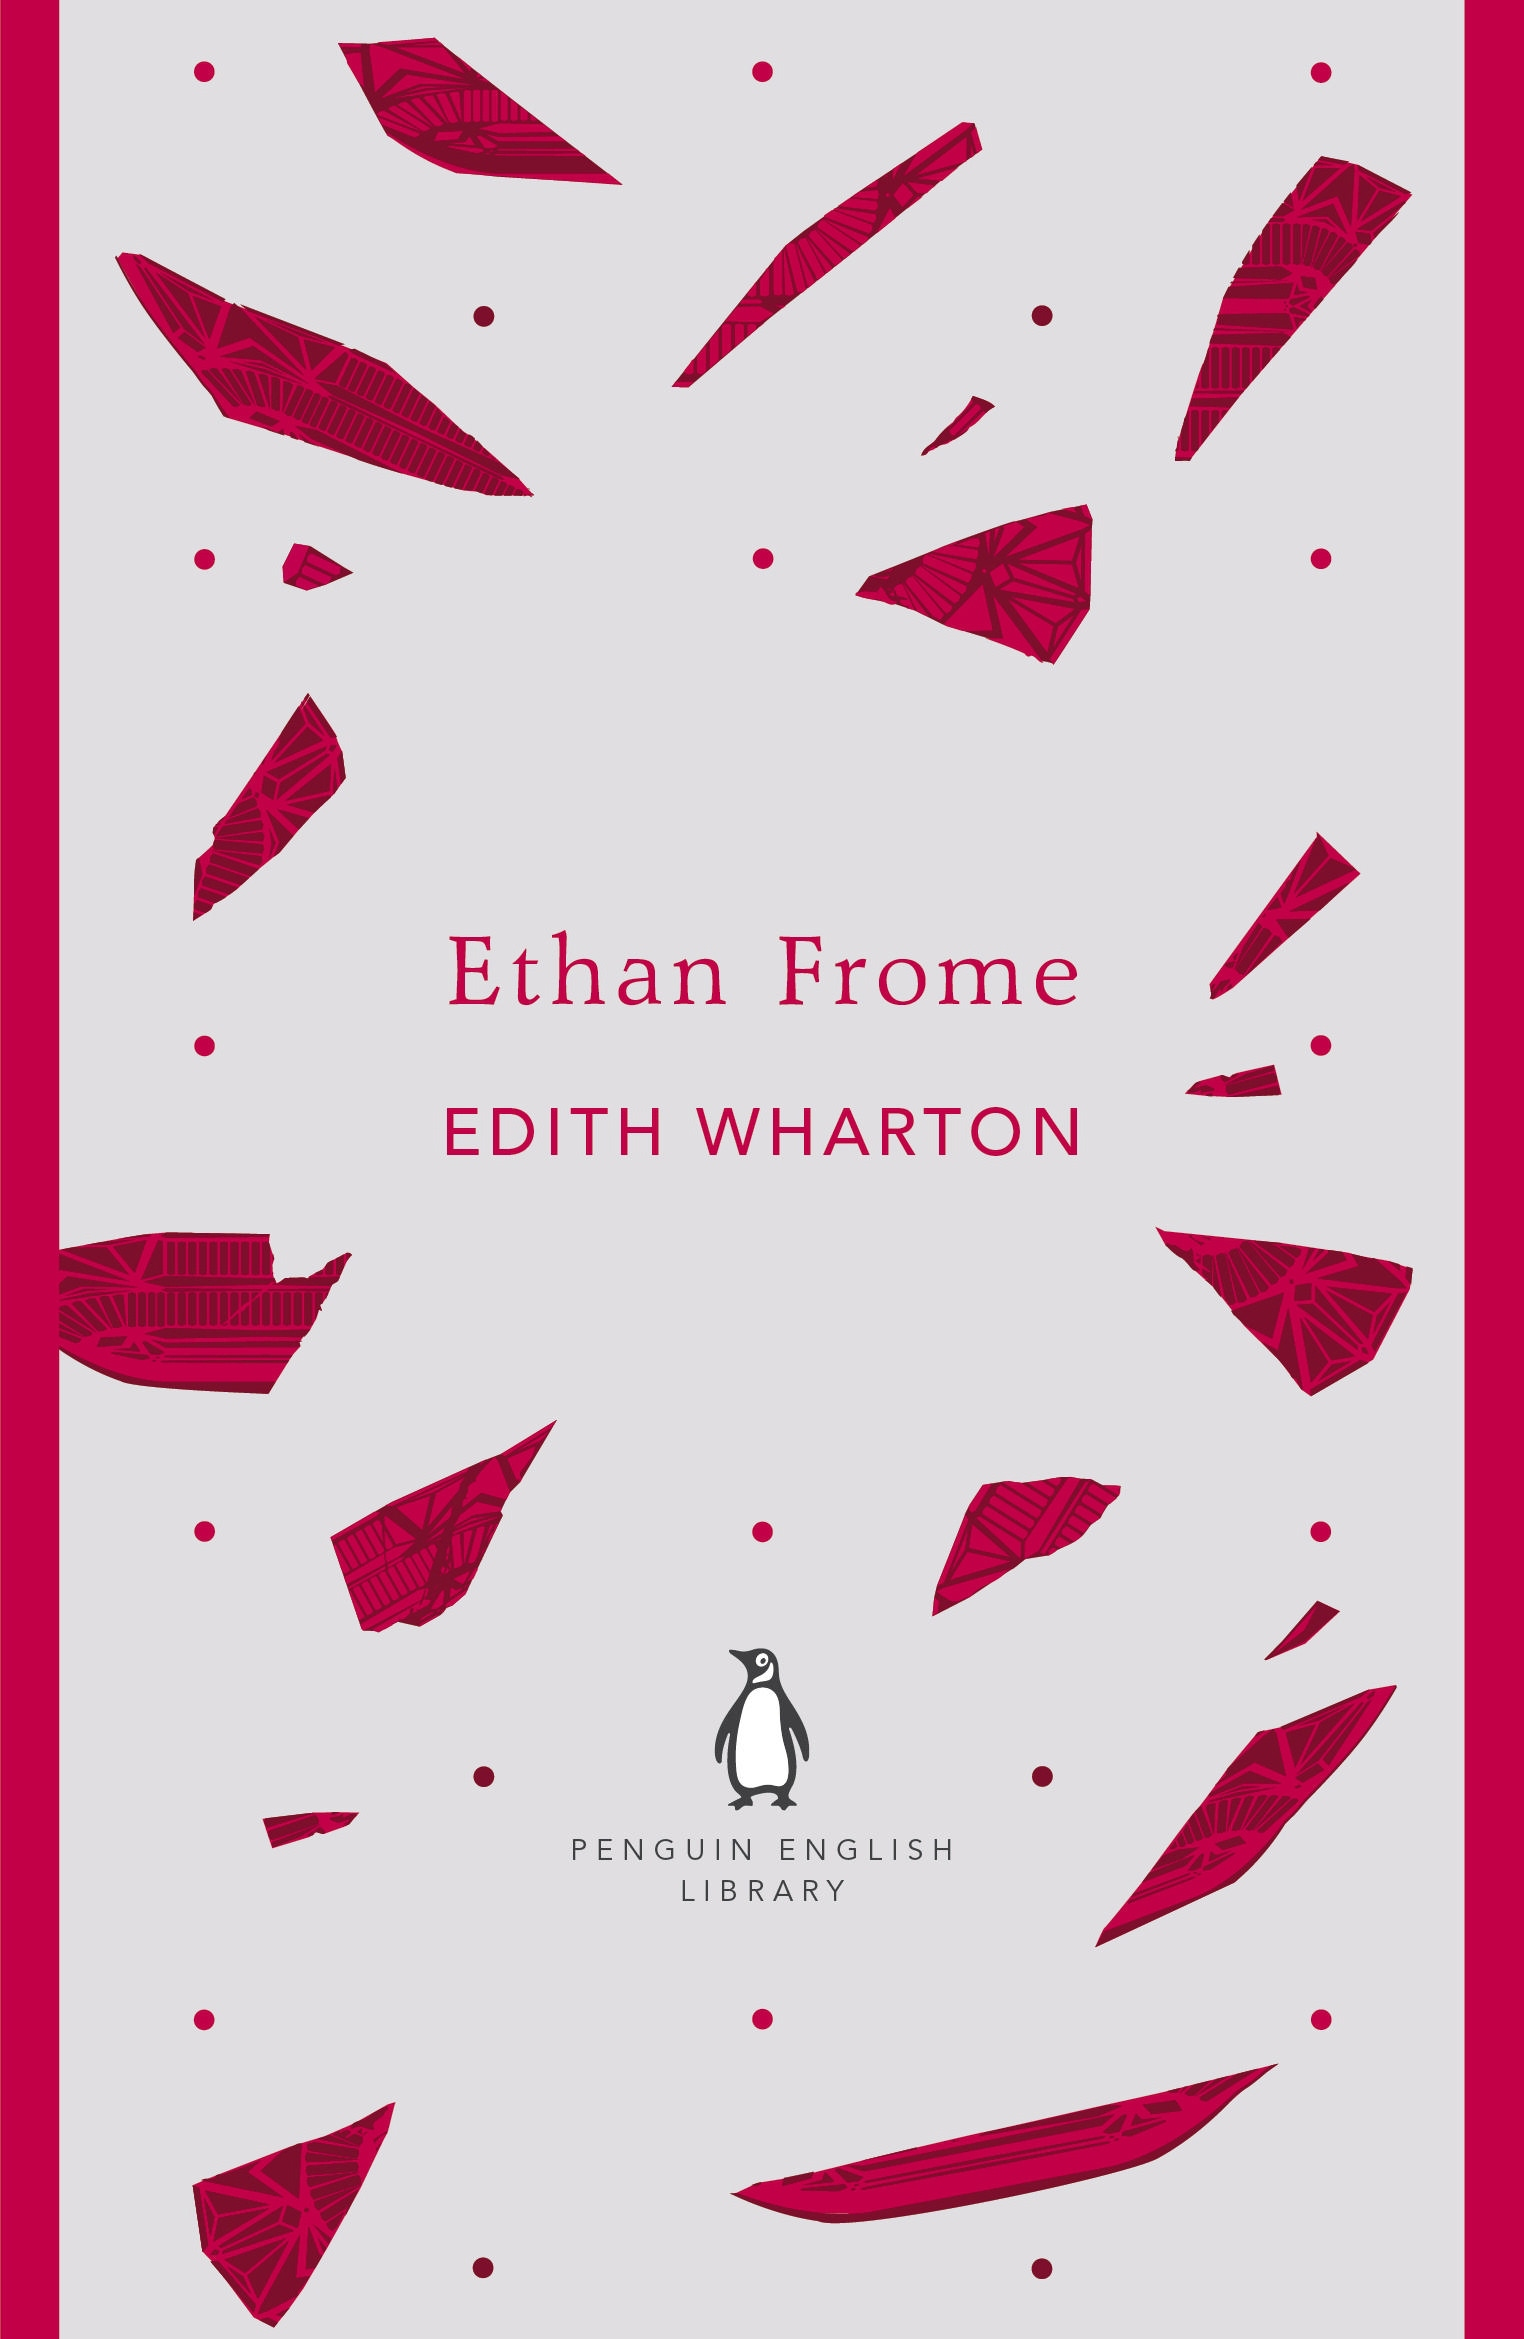 Ethan Frome                               By Edith Wharton, 77 pages. The title character of Wharton's novella gets caught in a love triangle between his wife and her cousin. The resolution, as any high school English student can tell you, is tragic.